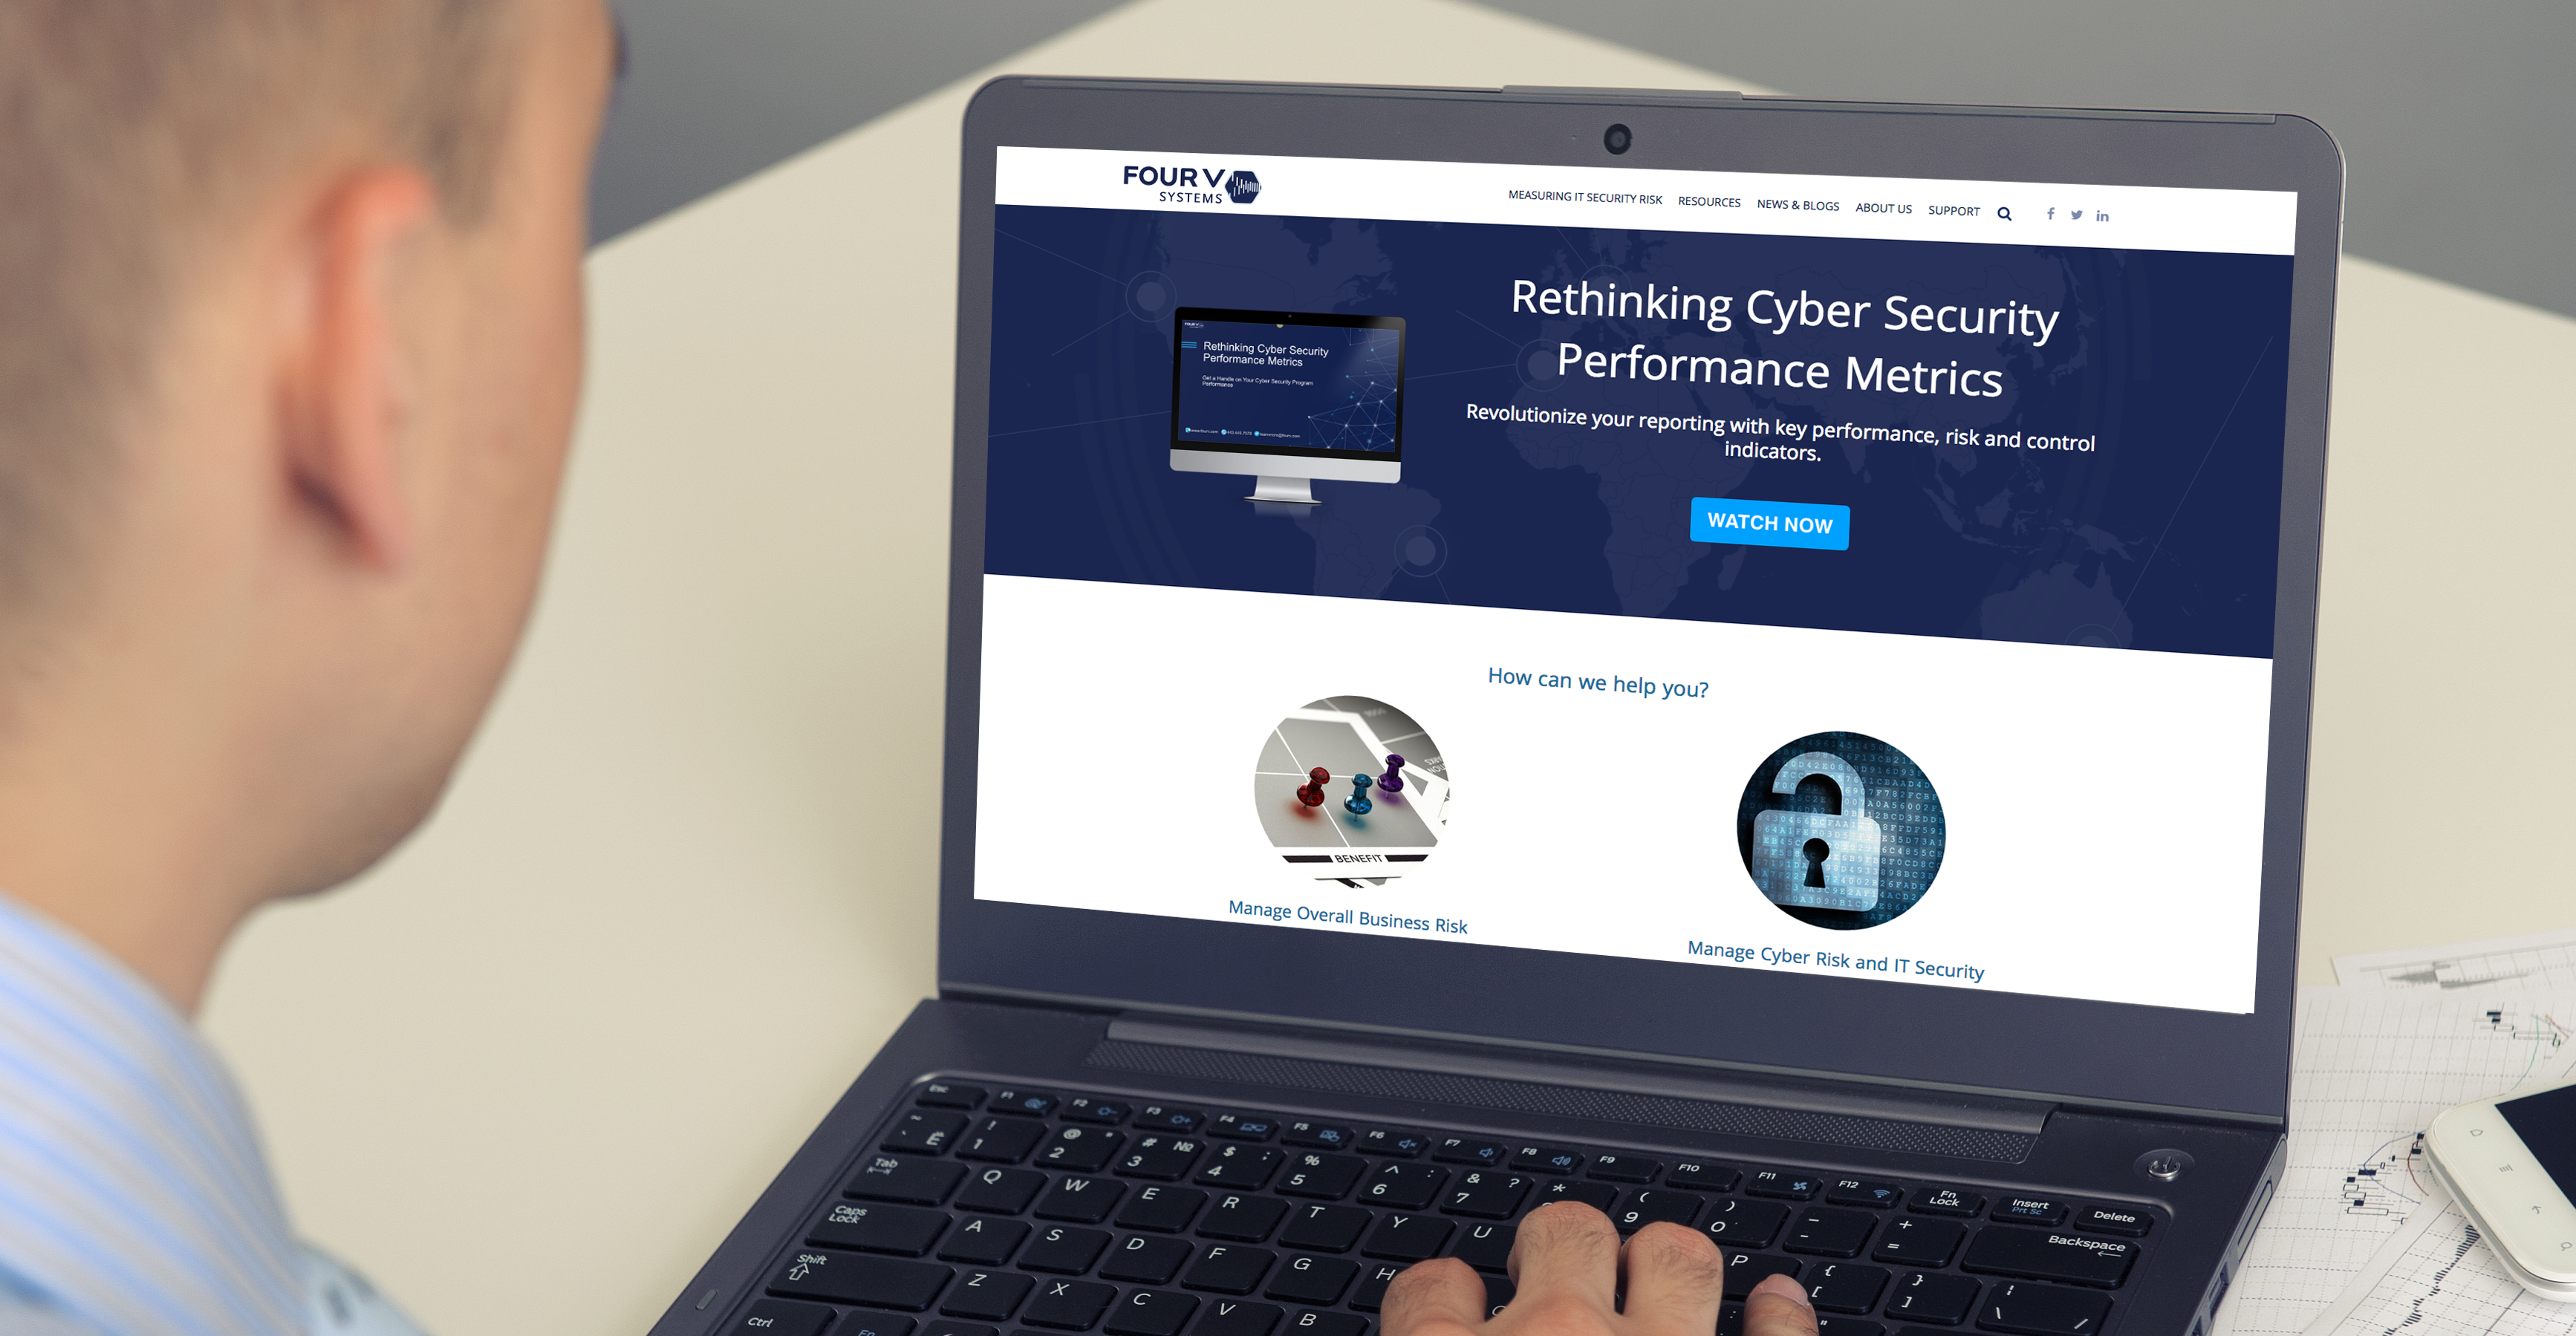 Cyber Security Firm Saw 450% Increase in Leads with HubSpot in First 90 Days